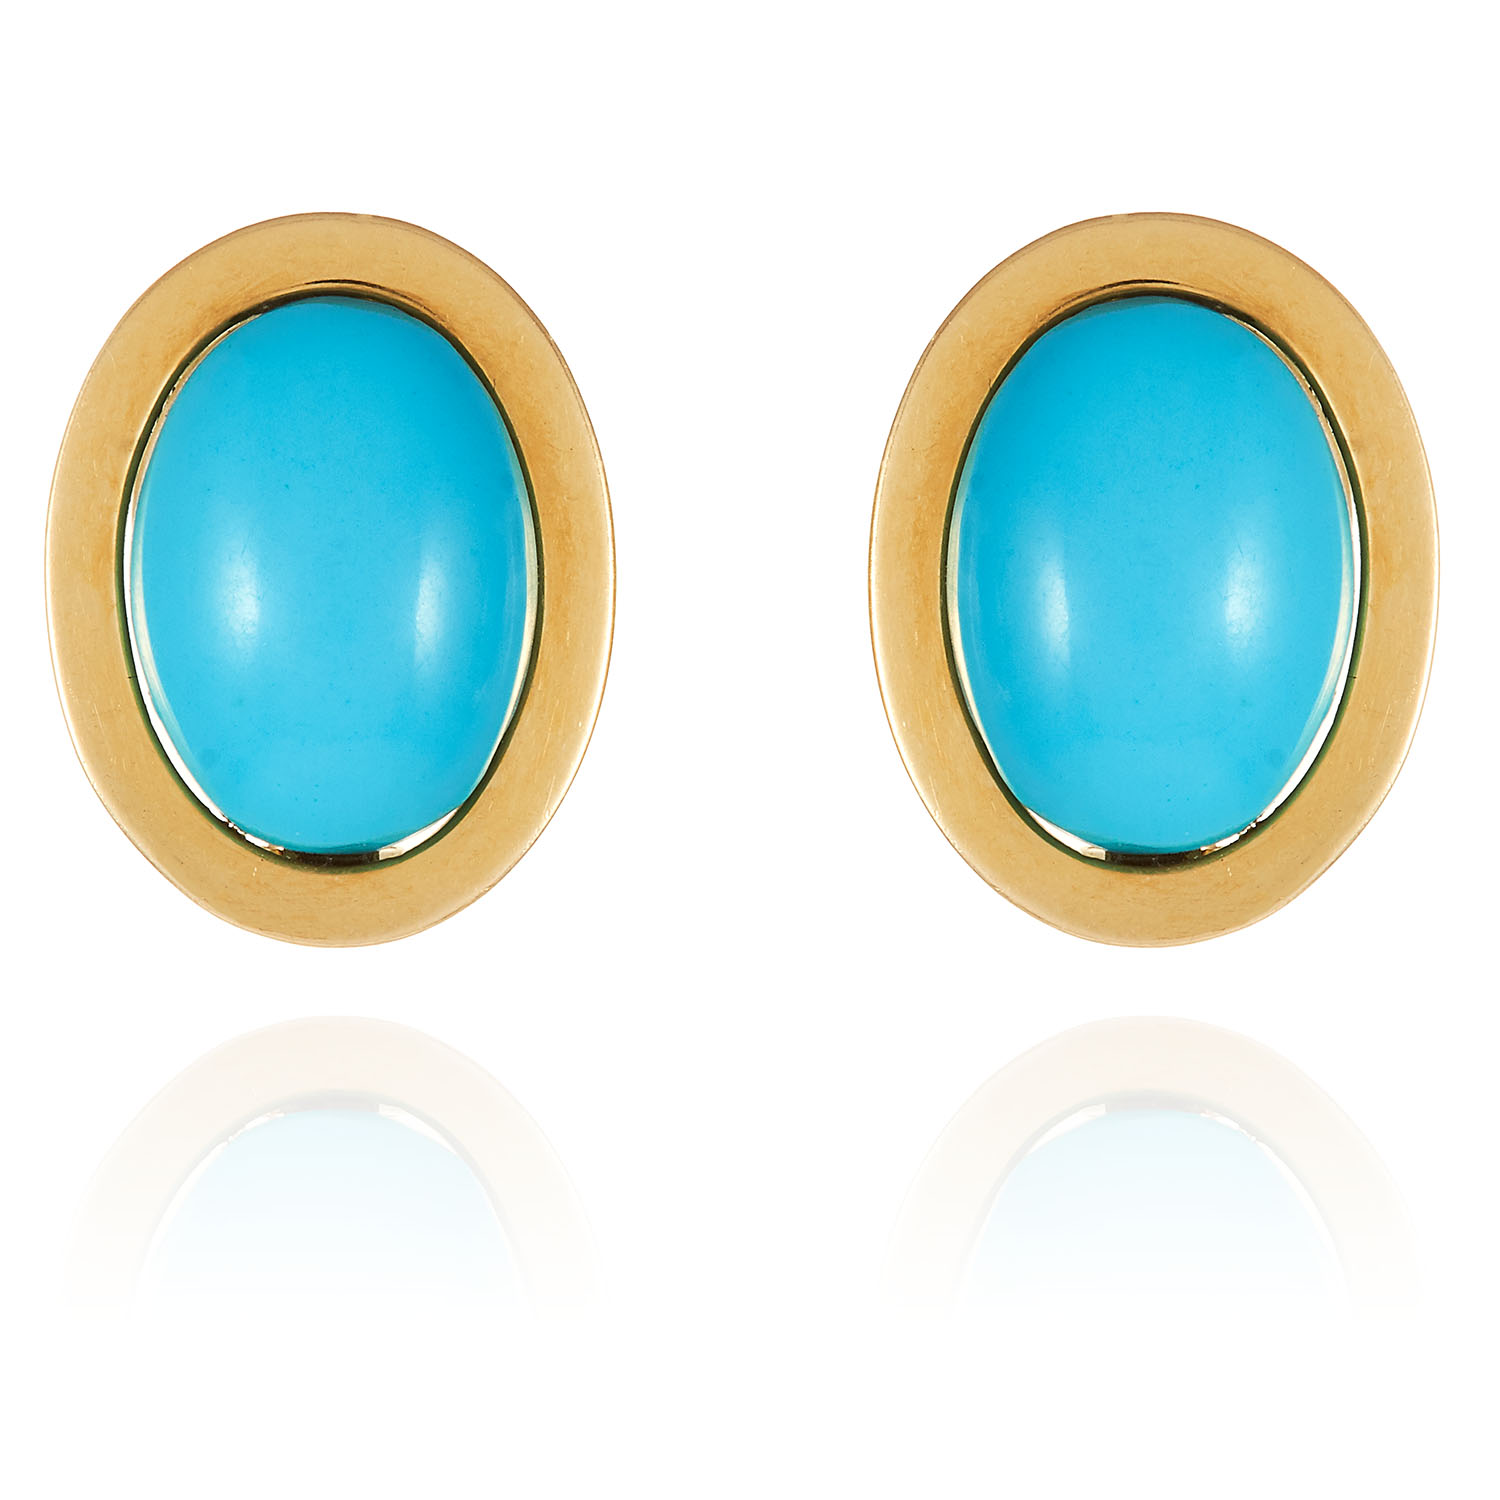 A PAIR OF TURQUOISE EAR CLIPS in 18ct yellow gold, each jewelled with a large cabochon turquoise